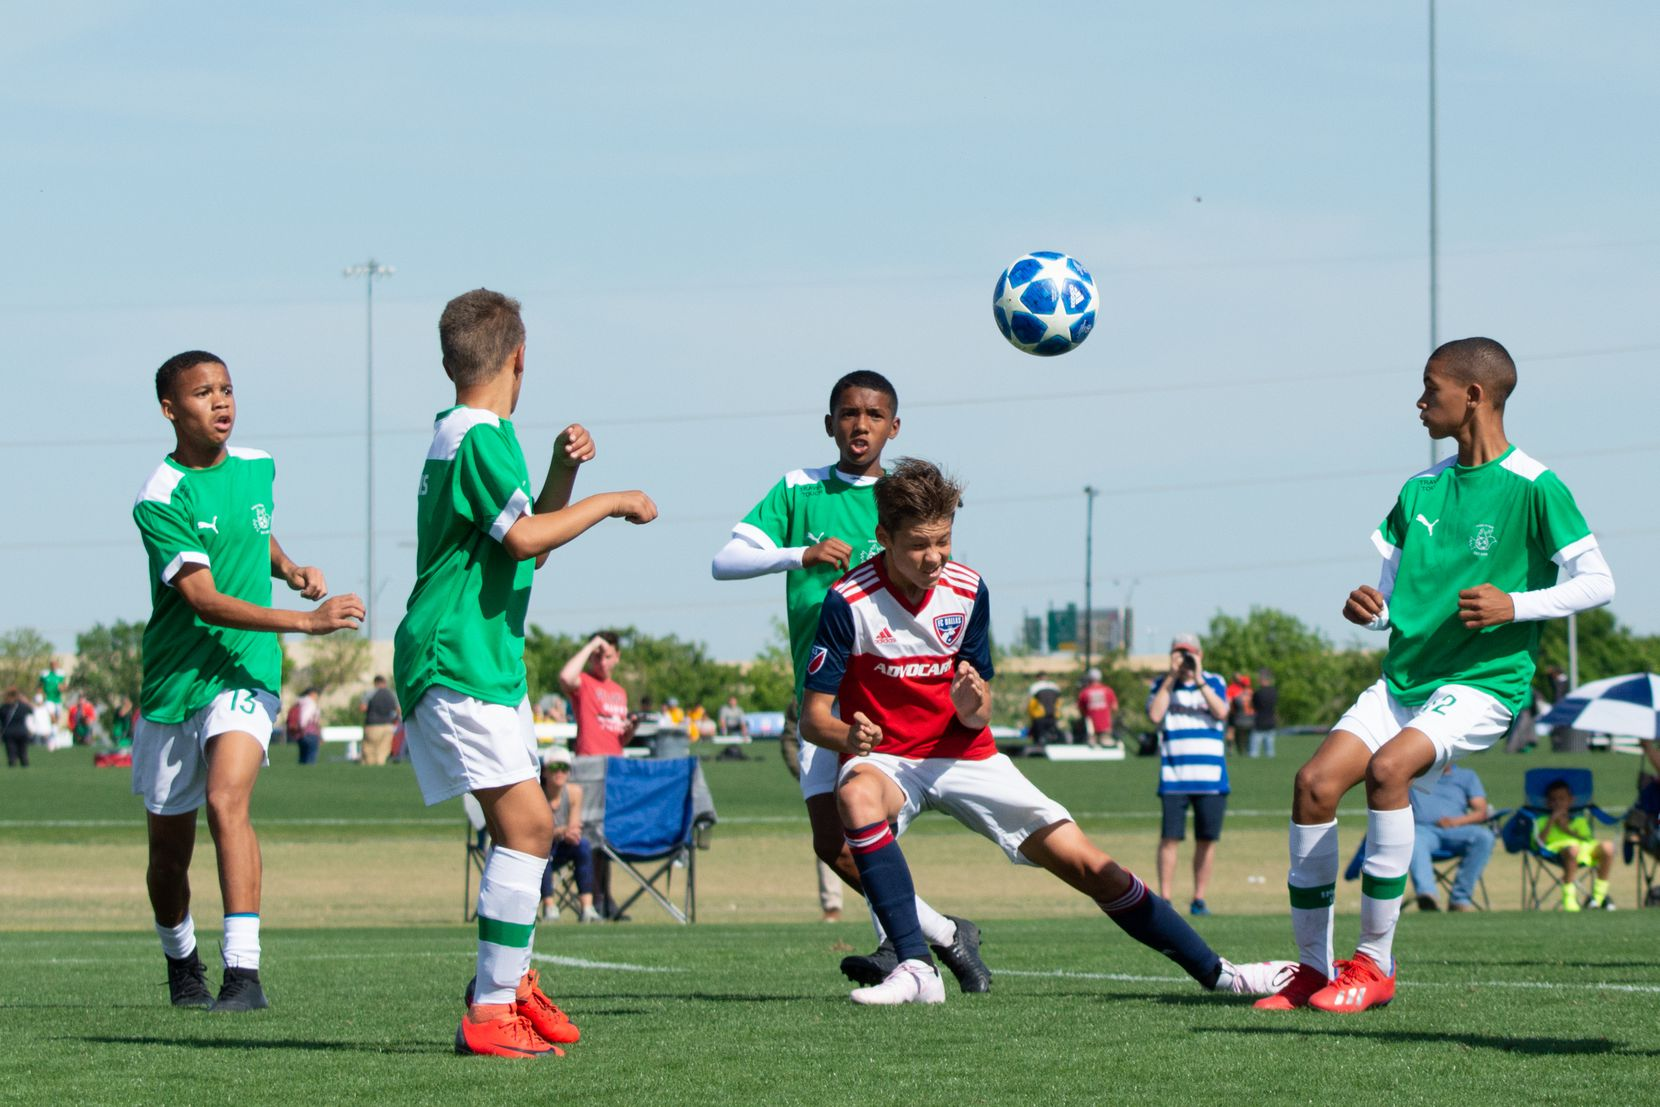 Nighte Pickering heads the ball against Ikapa United in the 2019 Dallas Cup Super 14s.